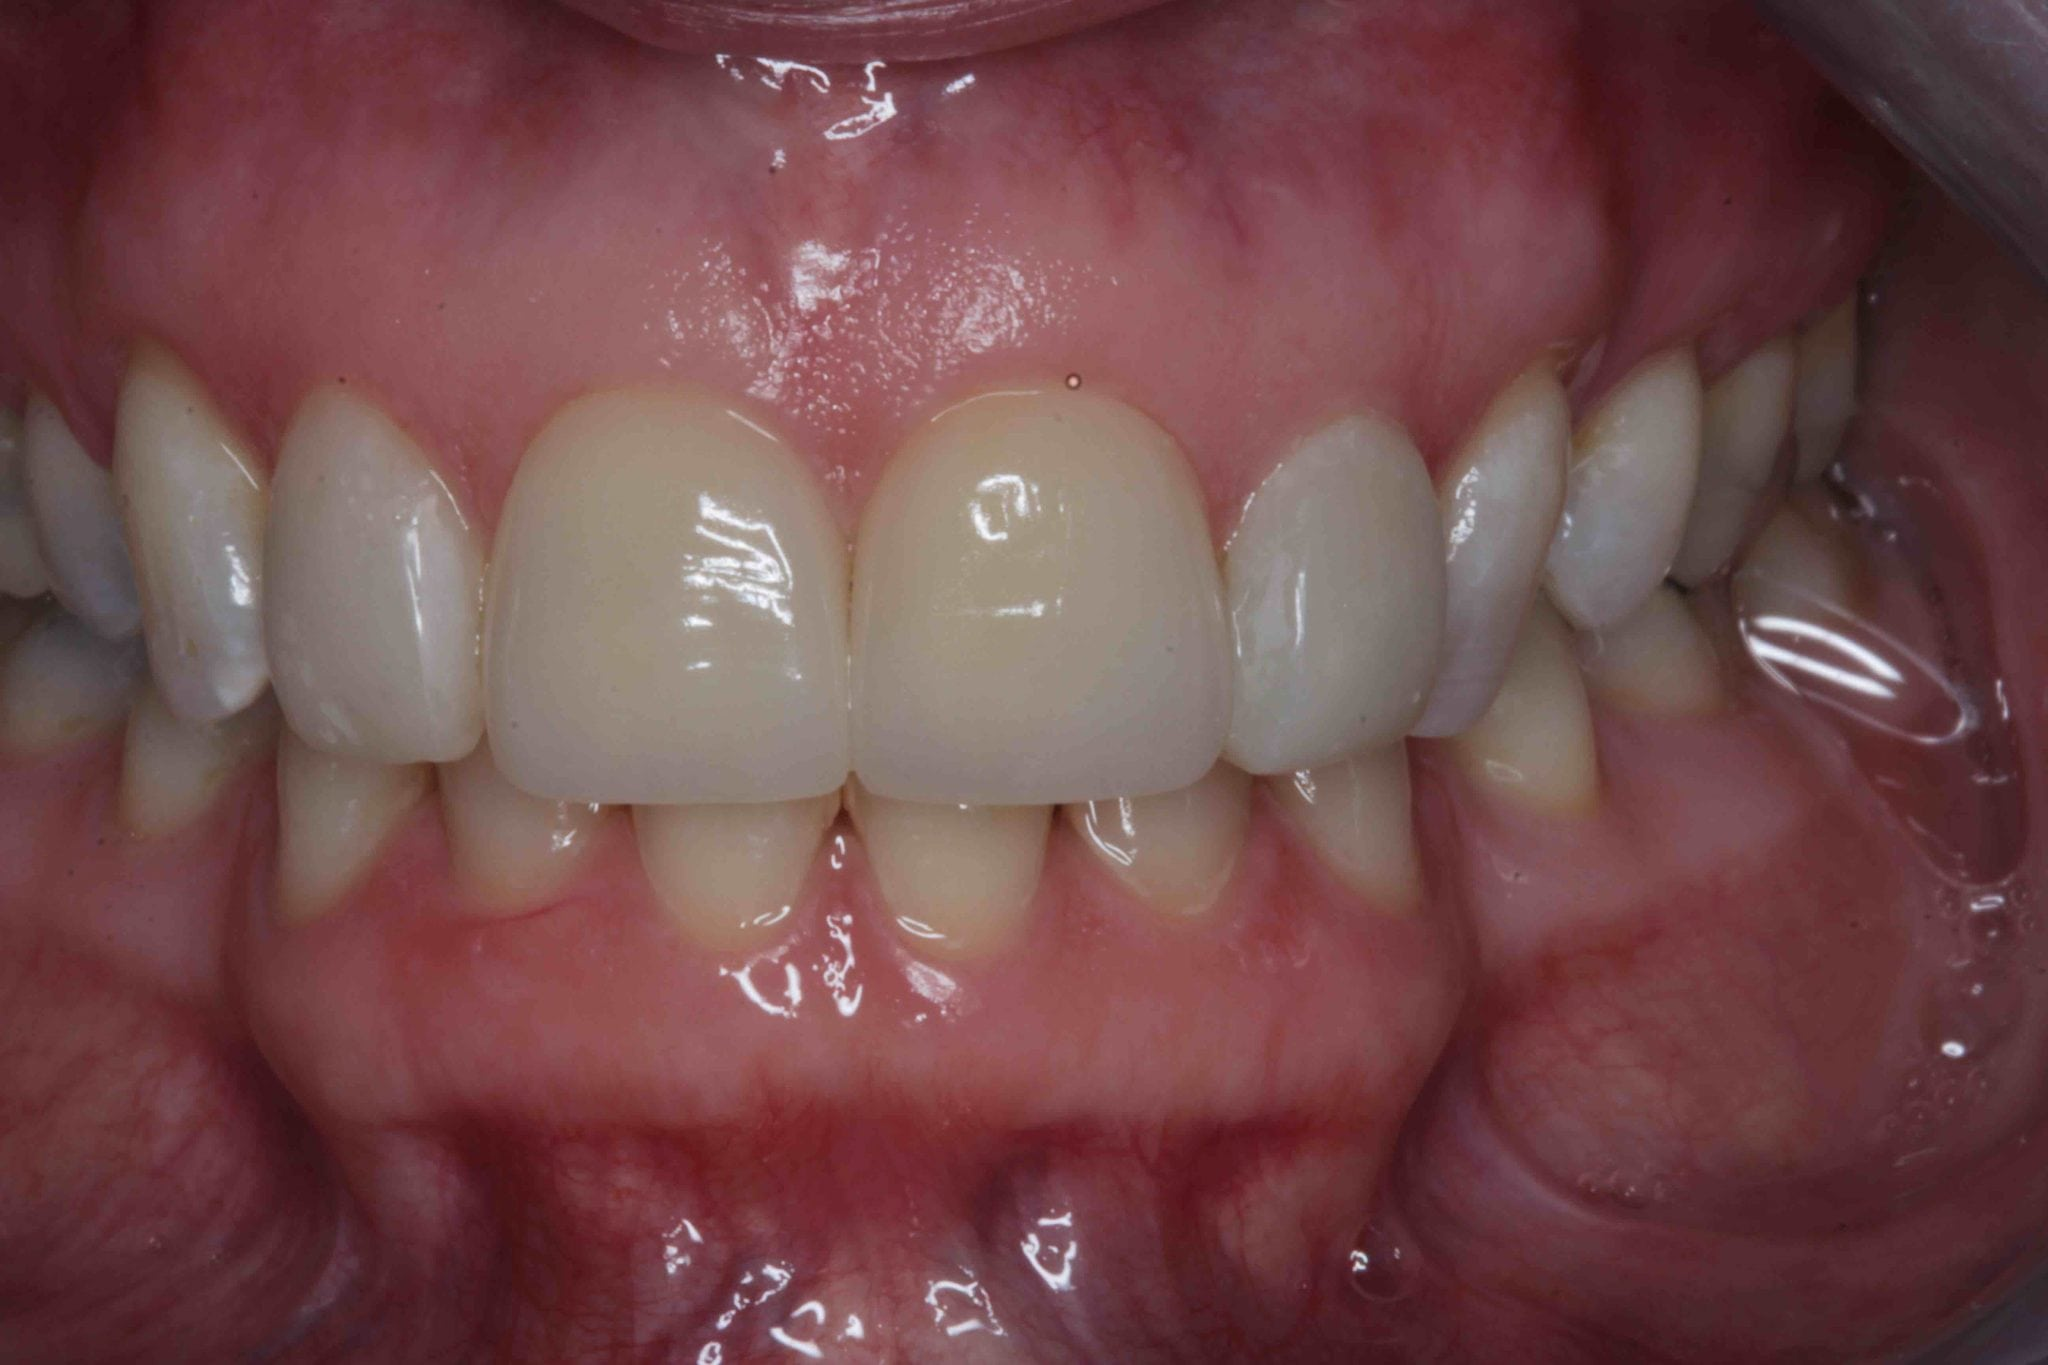 Teeth Bonding for severely stained front teeth - after treatment photos